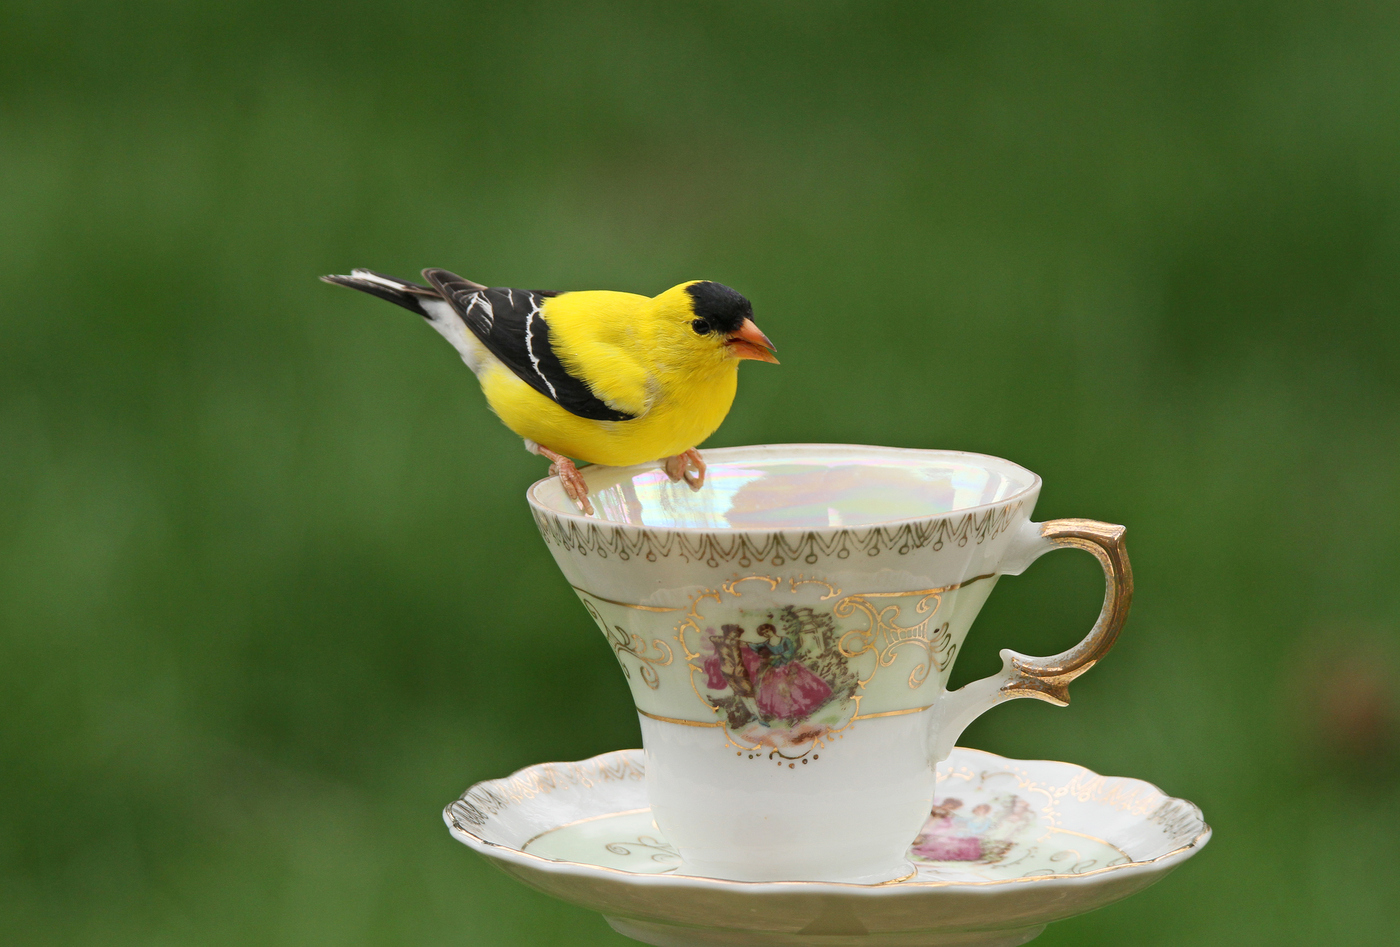 Goldfinch Teacup #7